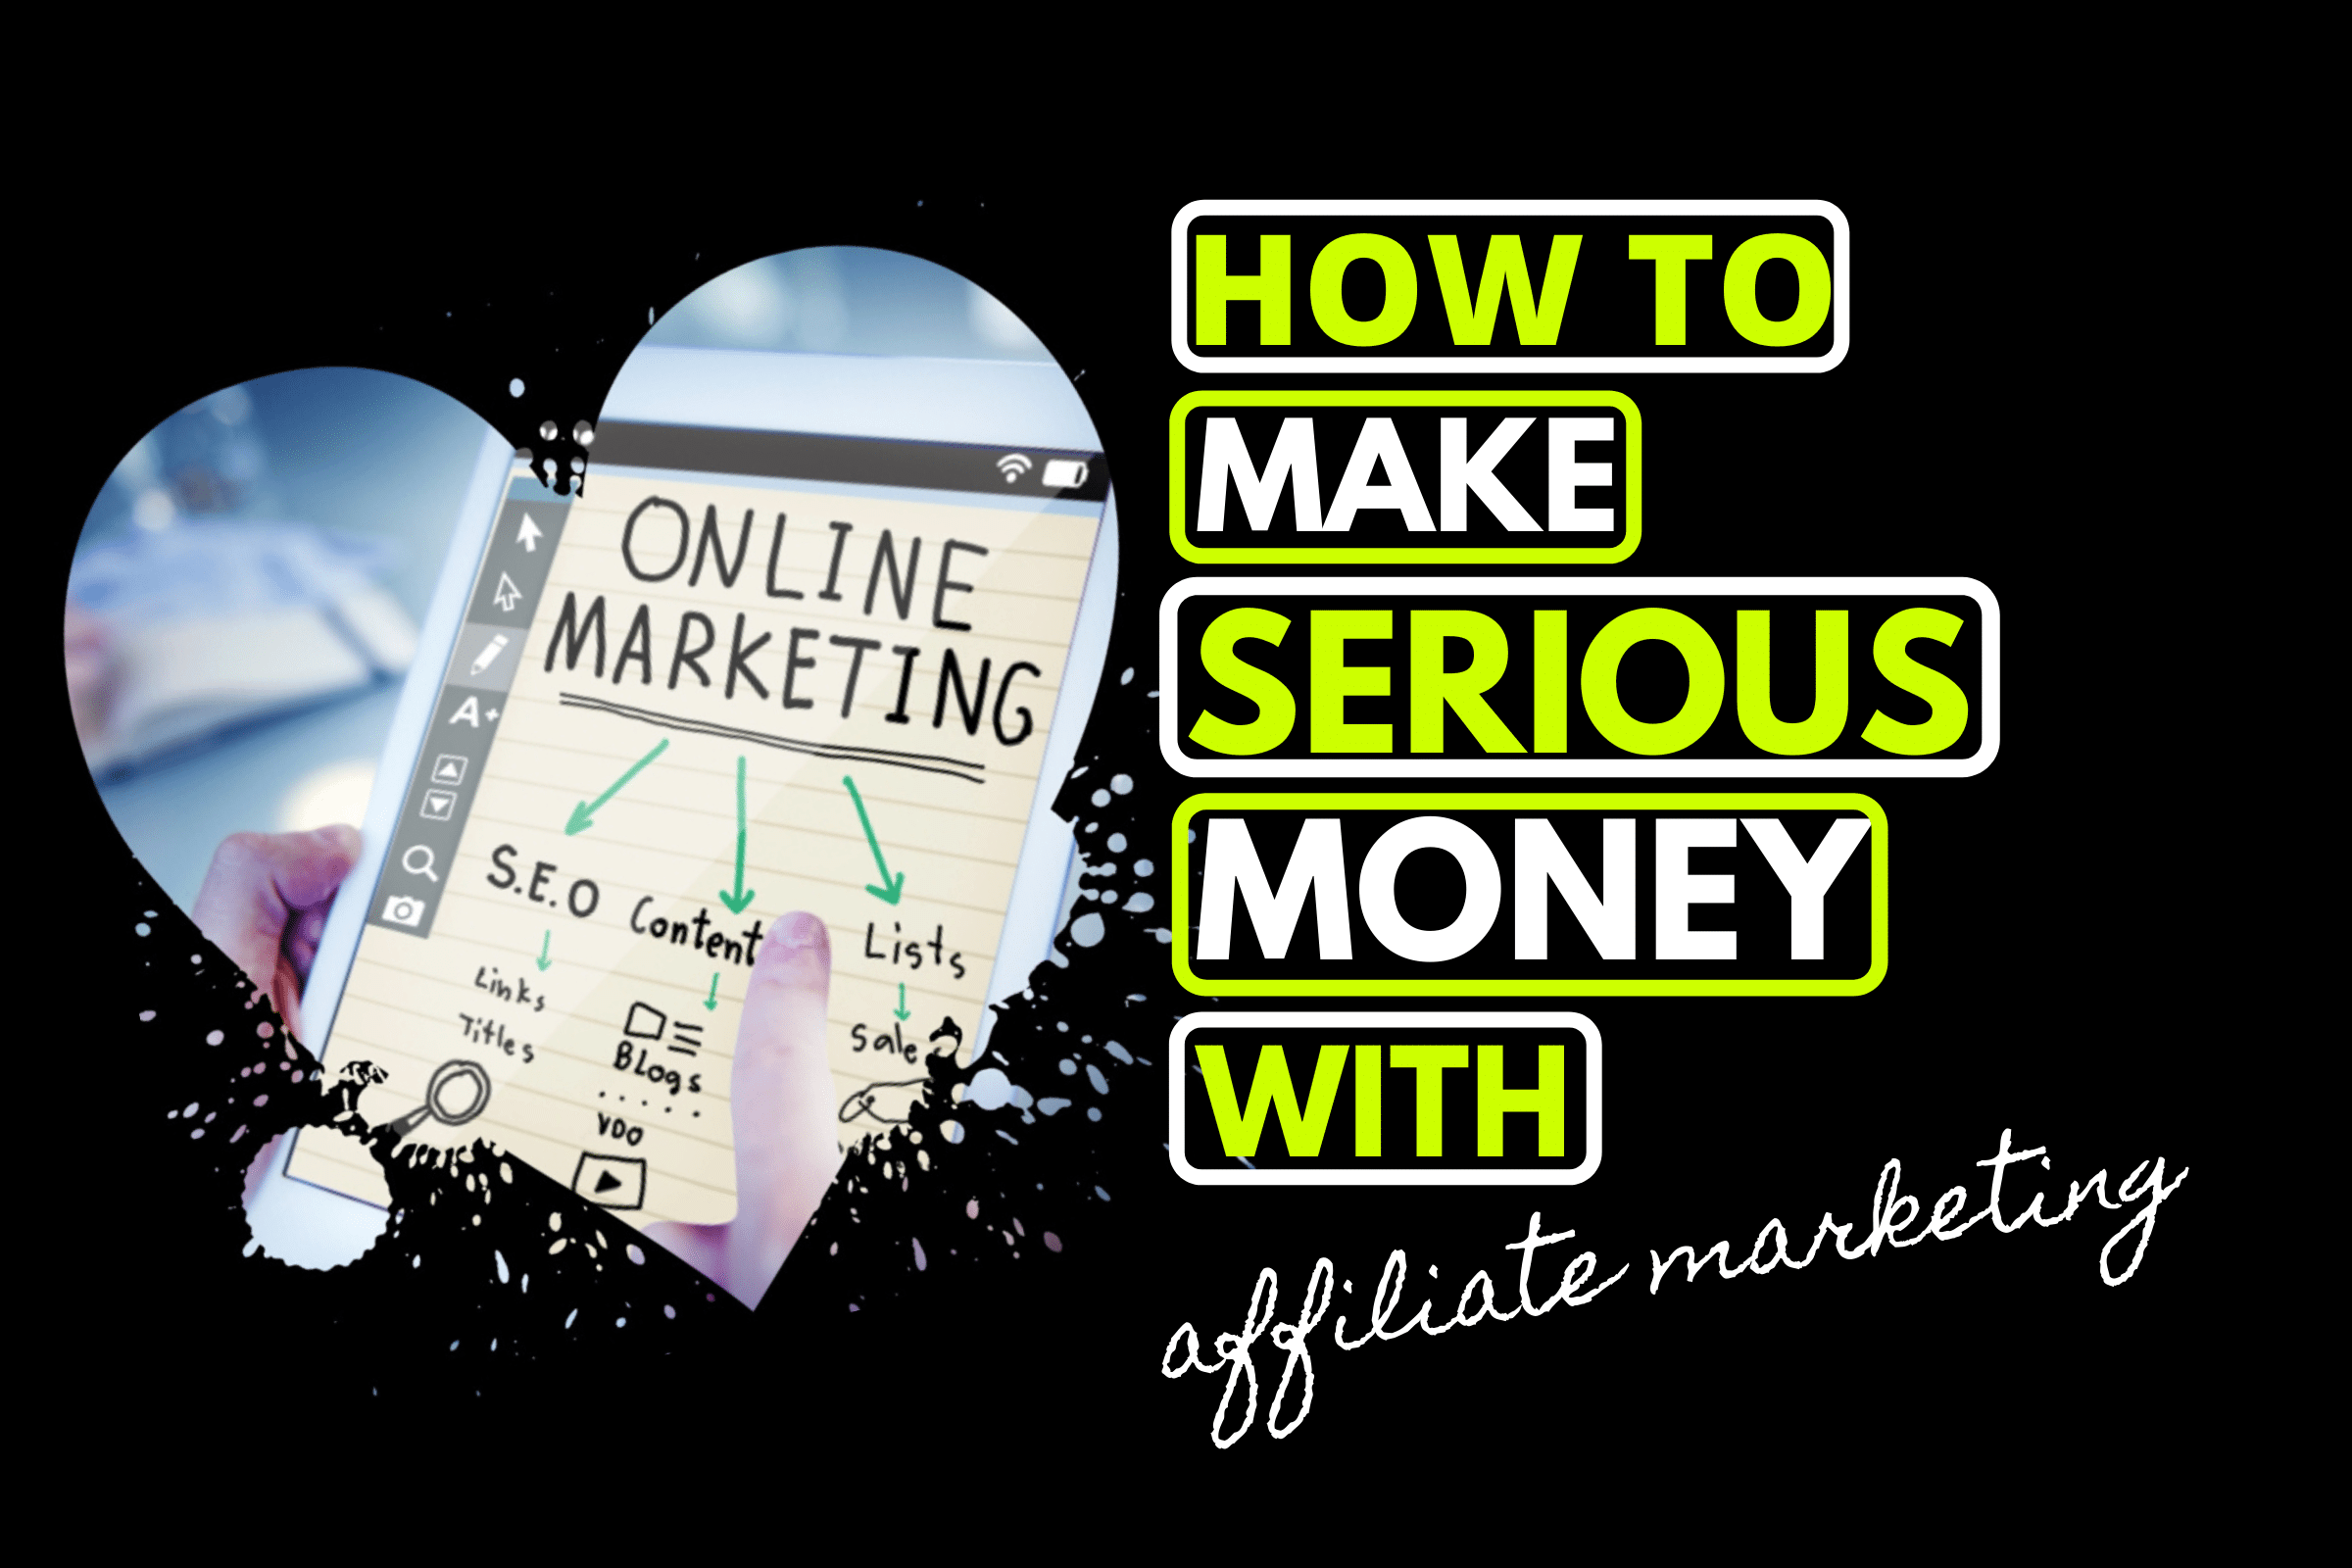 how to make serious money with affiliate marketing